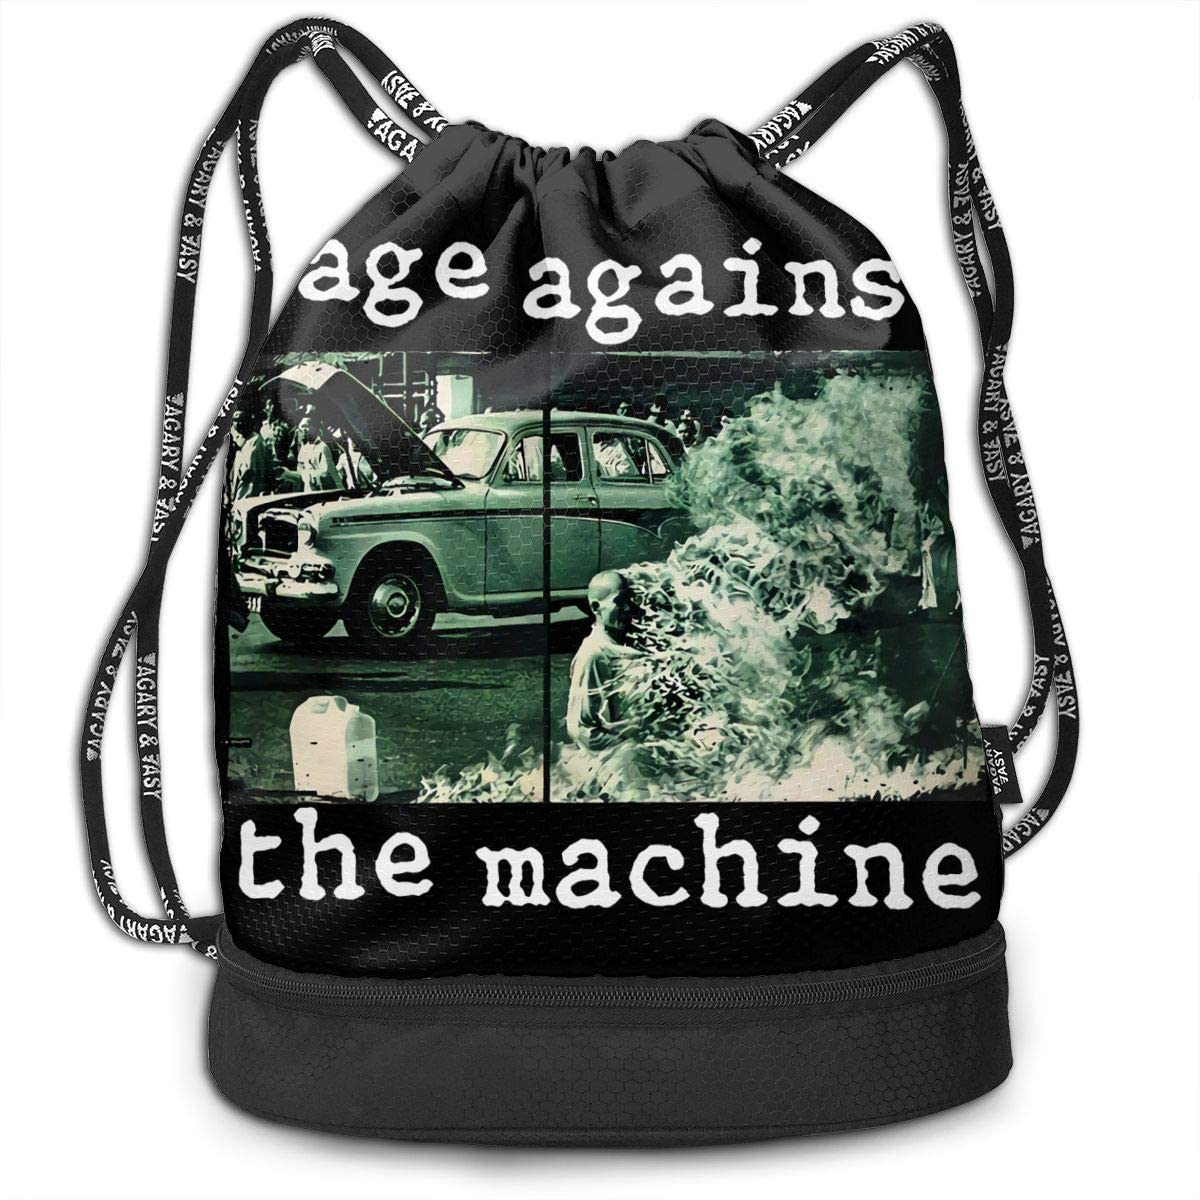 Rage Against The Ma-Chine Multifunctional Travel Sports And Leisure Drawstring Backpack